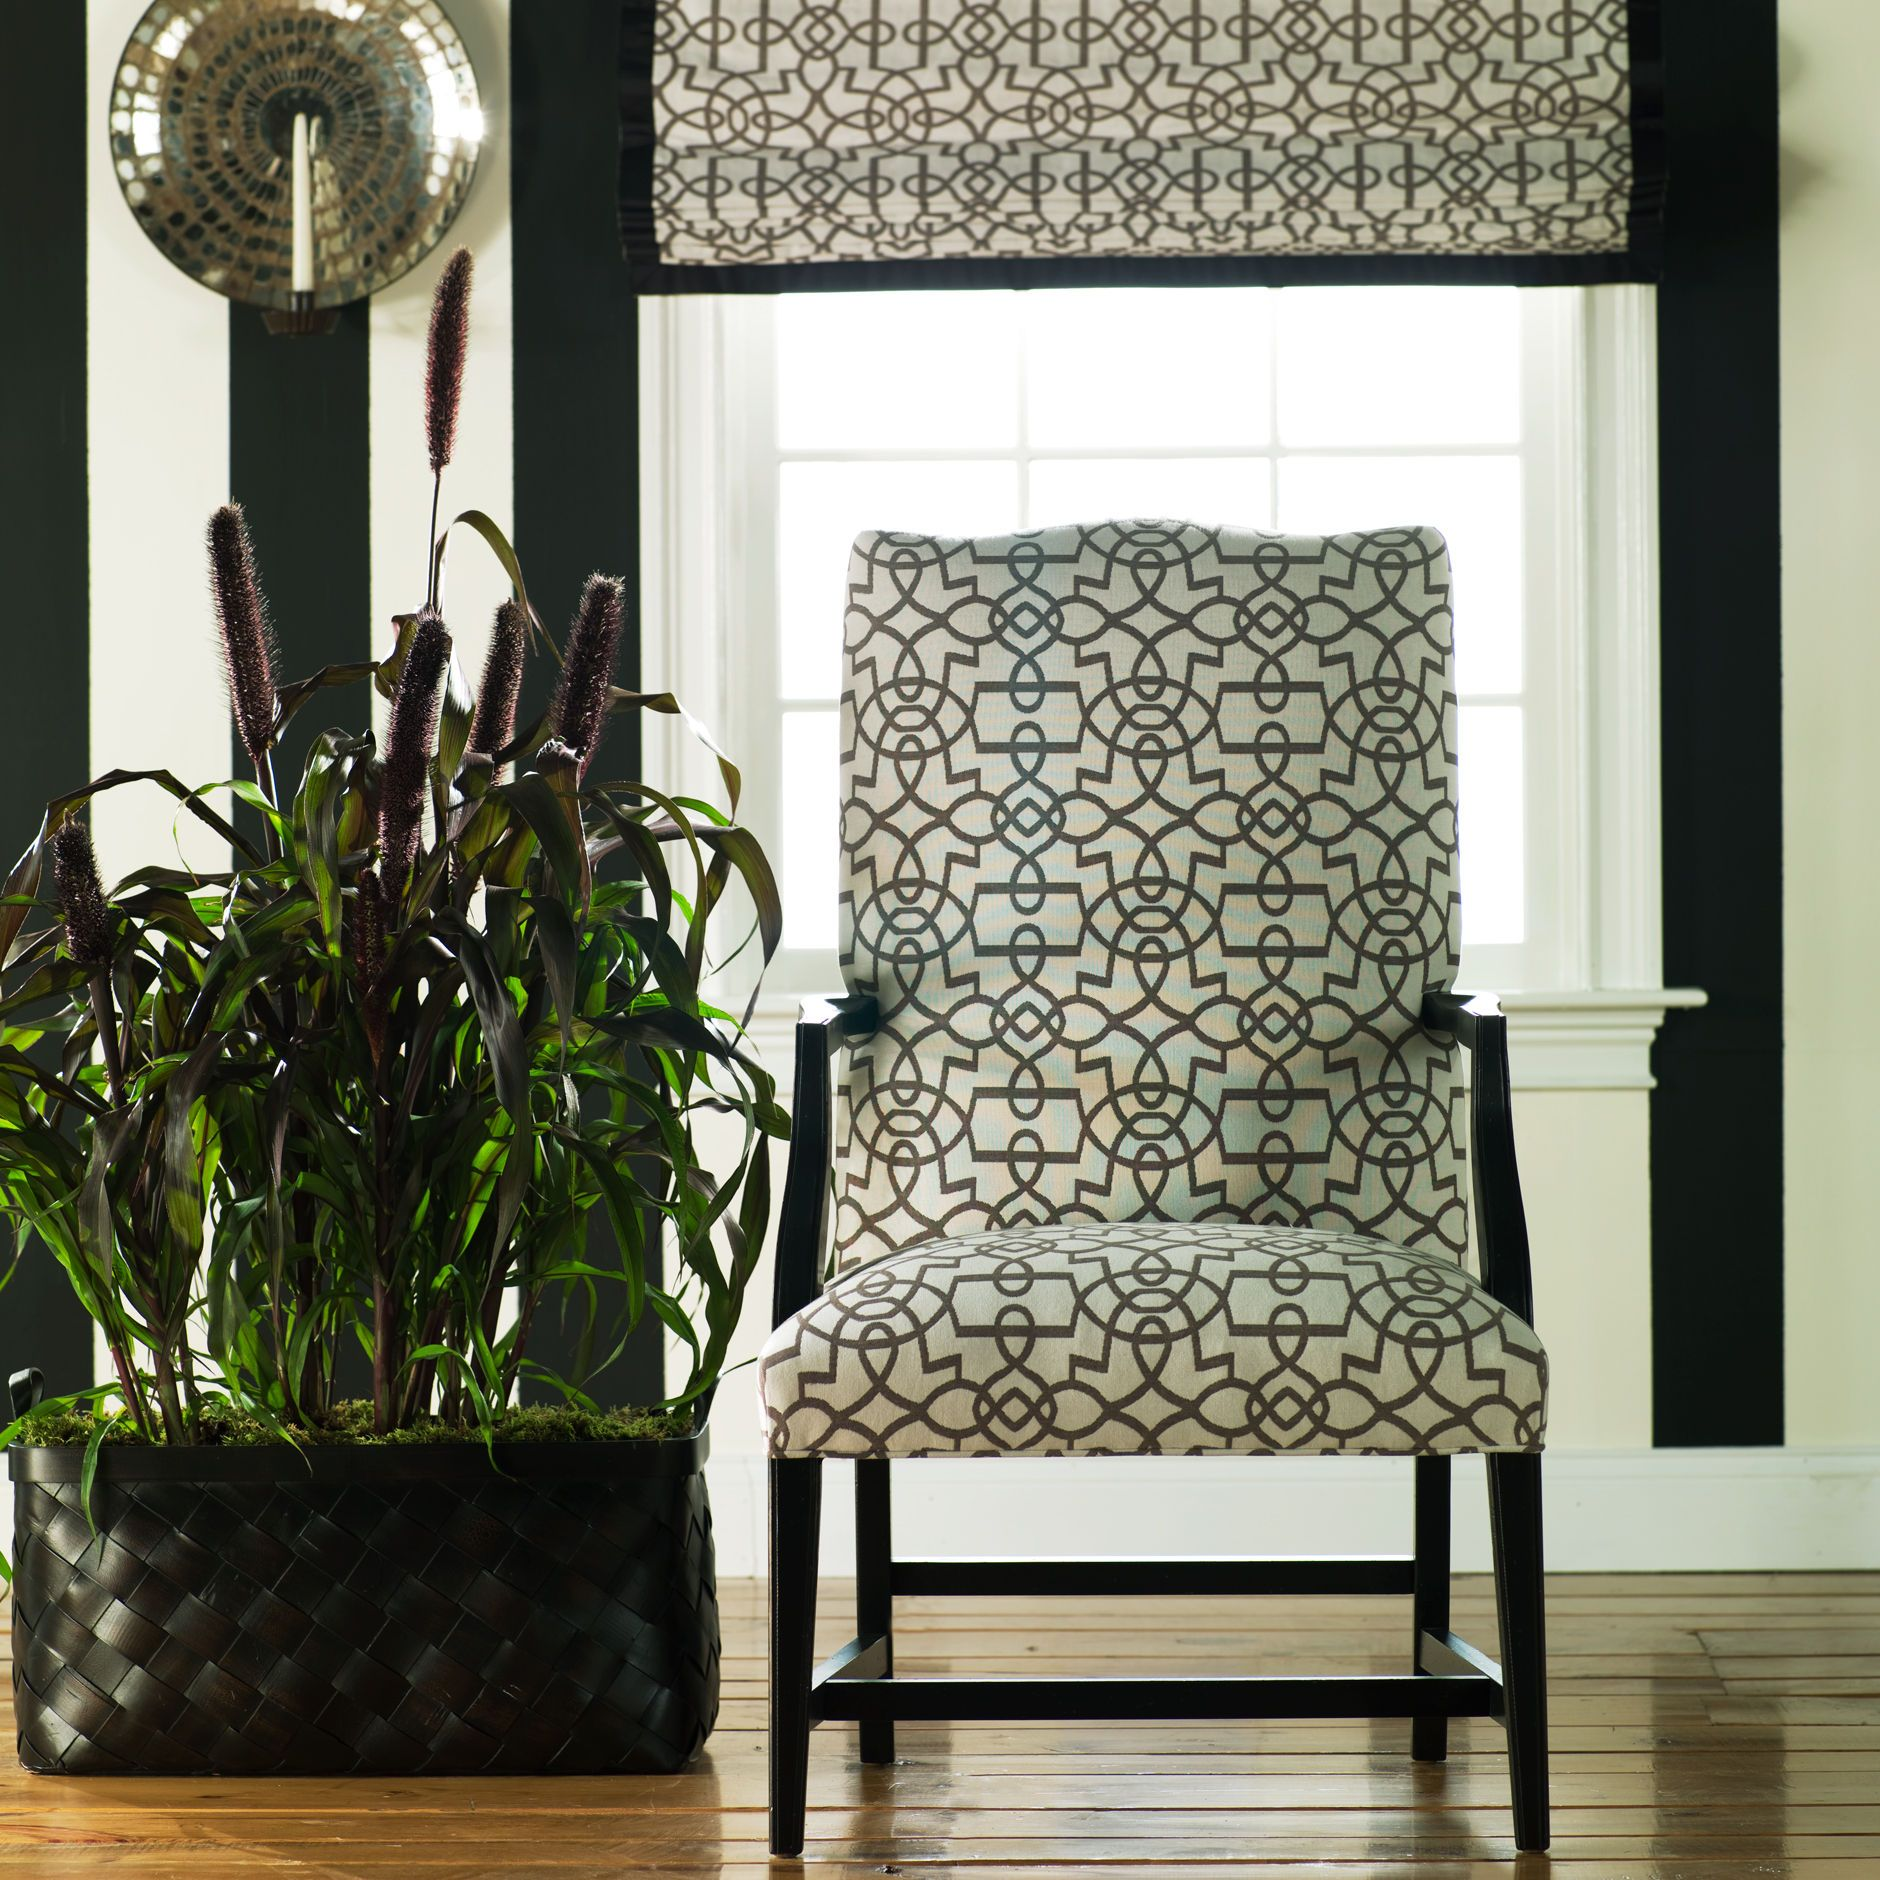 edgy furniture. Black And White Furniture. Ethan Allen Martha Washington Chair. Edgy Furniture T